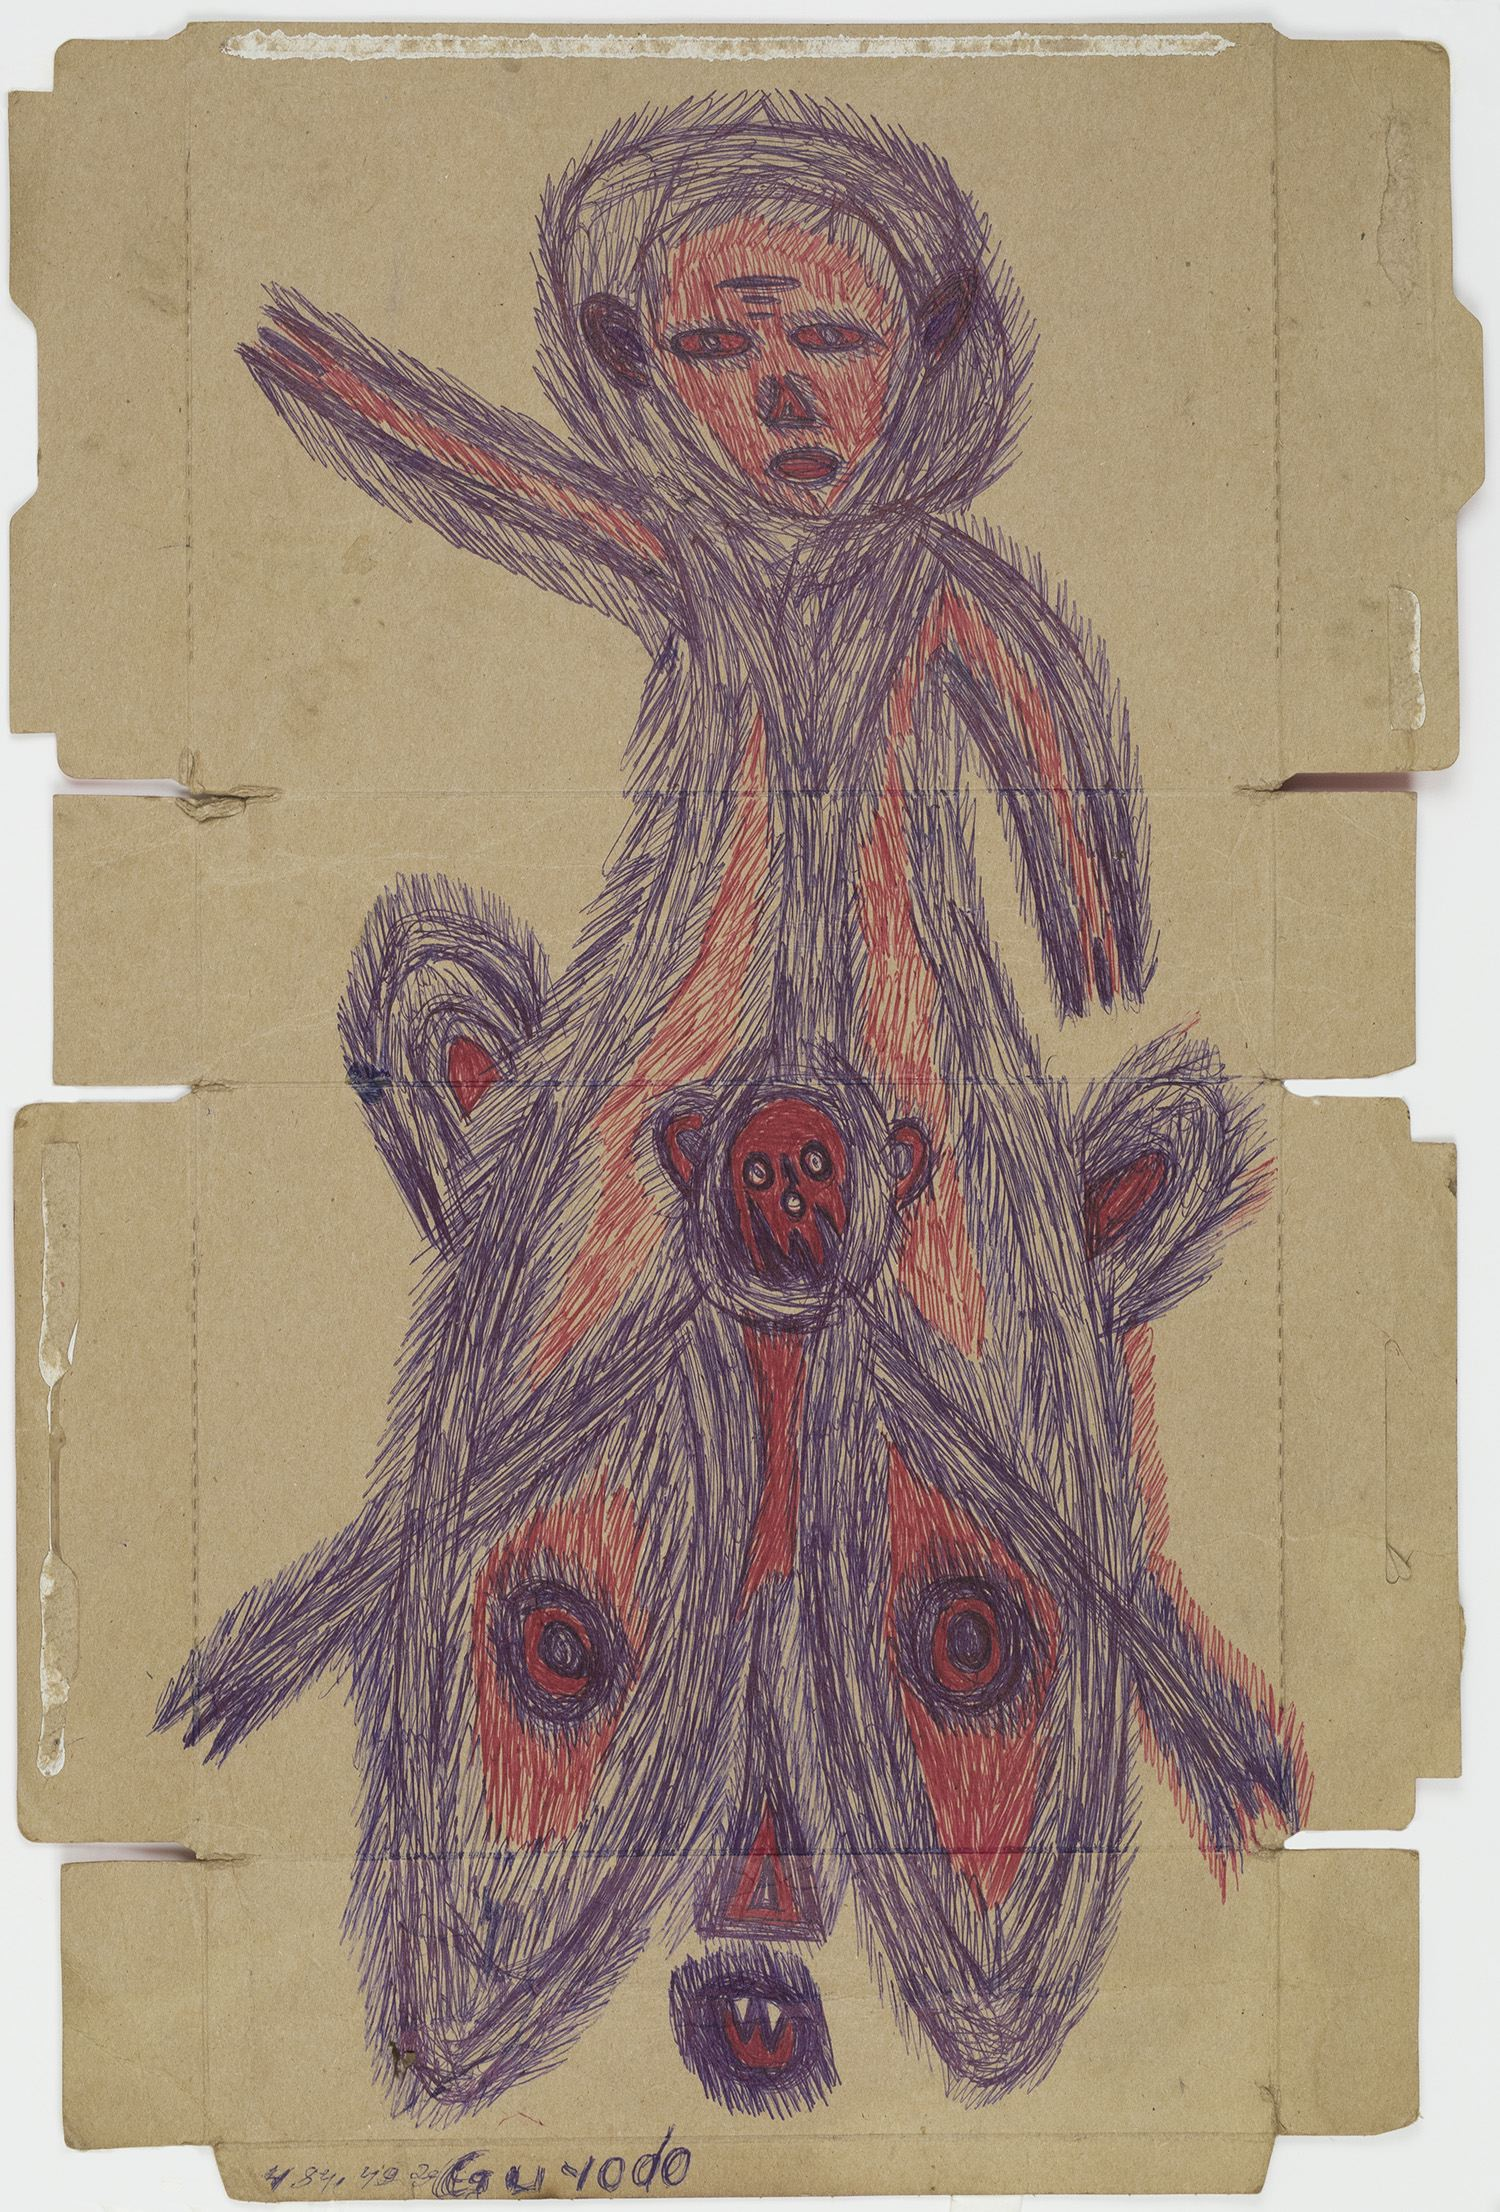 Guyodo (Frantz Jacques)    Untitled  , 2014 Ballpoint pen on recycled corn-flakes box 23.23 x 15.35 inches 59 x 39 cm Gyd 8